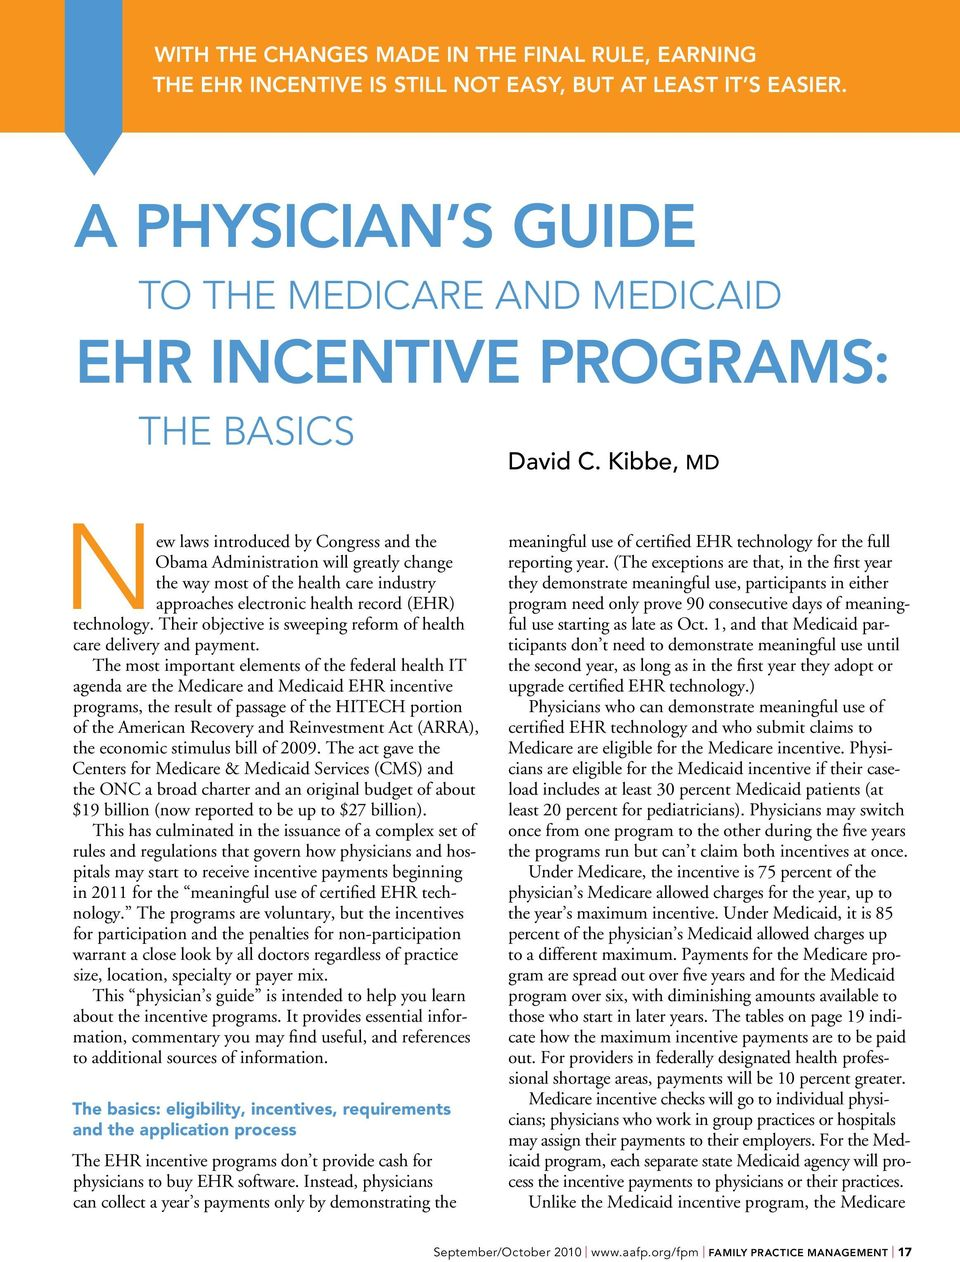 Kibbe, MD New laws introduced by Congress and the Obama Administration will greatly change the way most of the health care industry approaches electronic health record (EHR) technology.